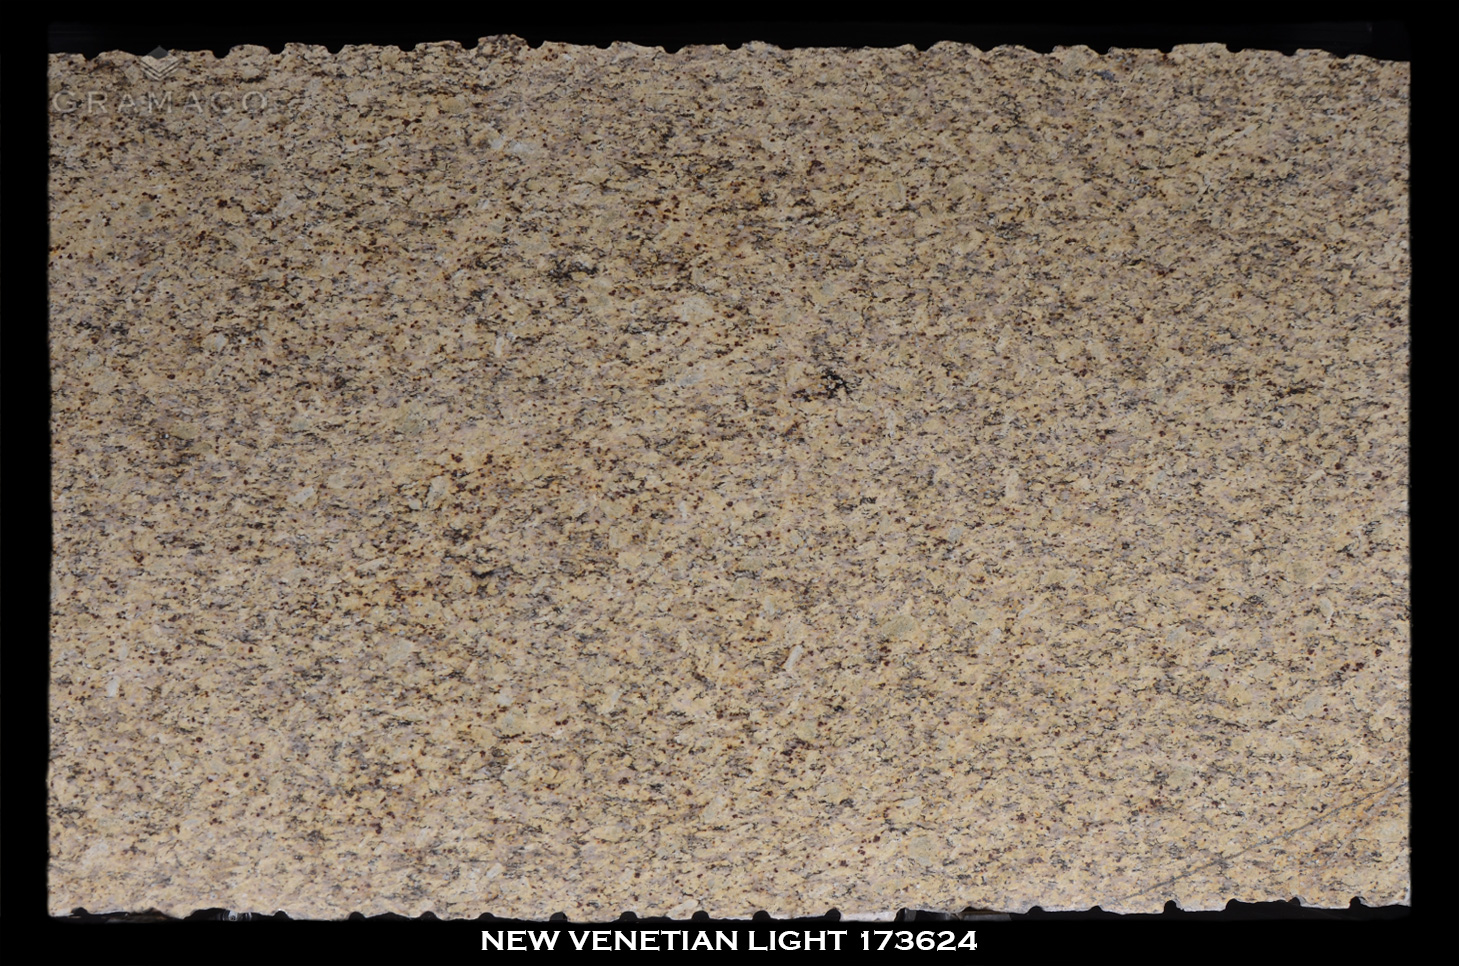 new-venetian-light-slab-173624